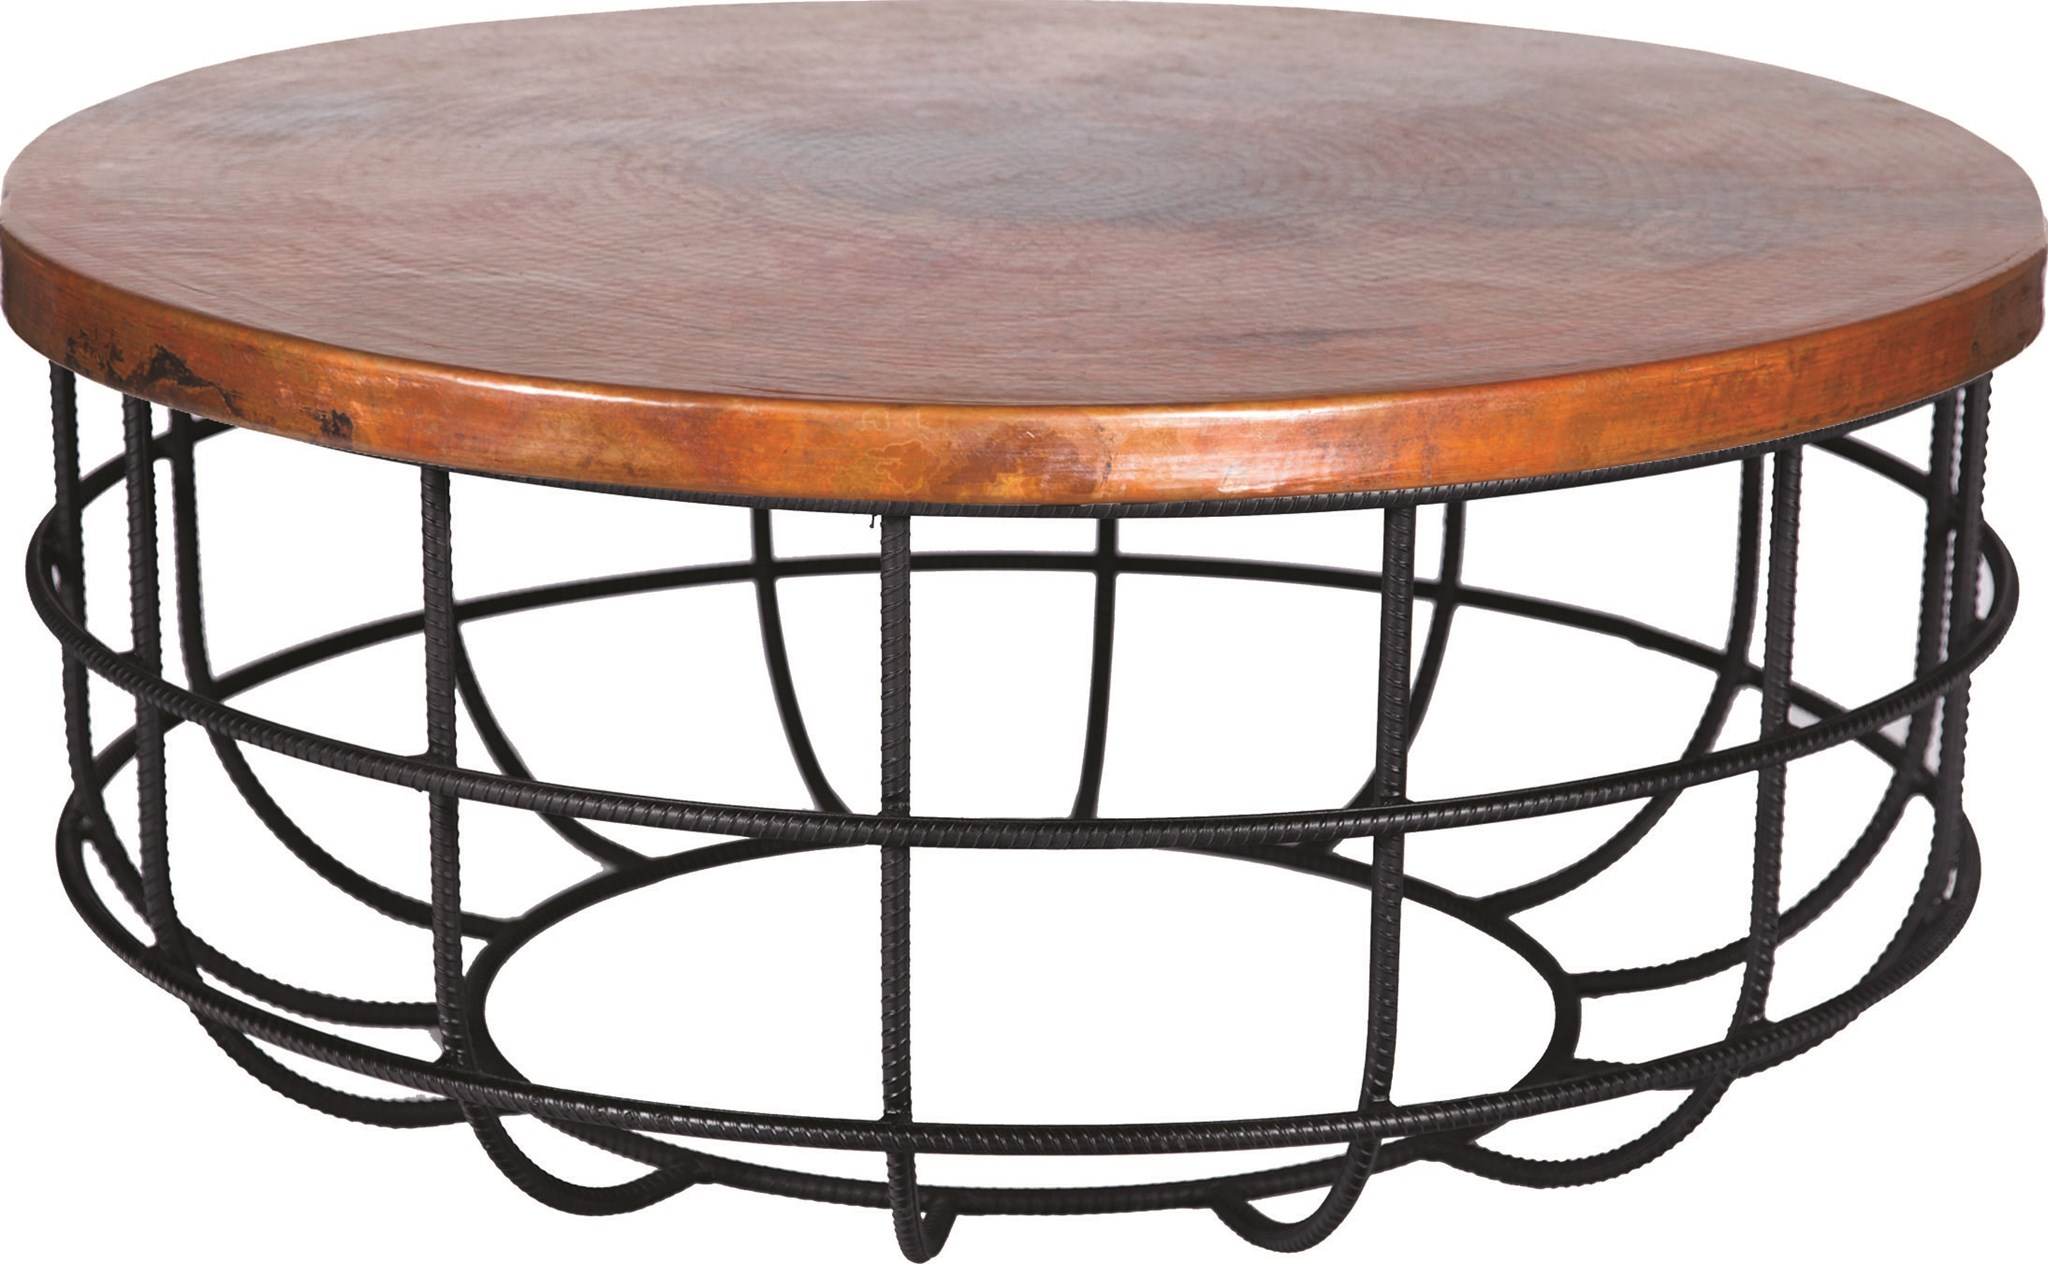 Axel Coffee Table In Rebar With Round Hammered Copper Top in Coffee Sign With Rebar Wall Decor (Image 1 of 30)